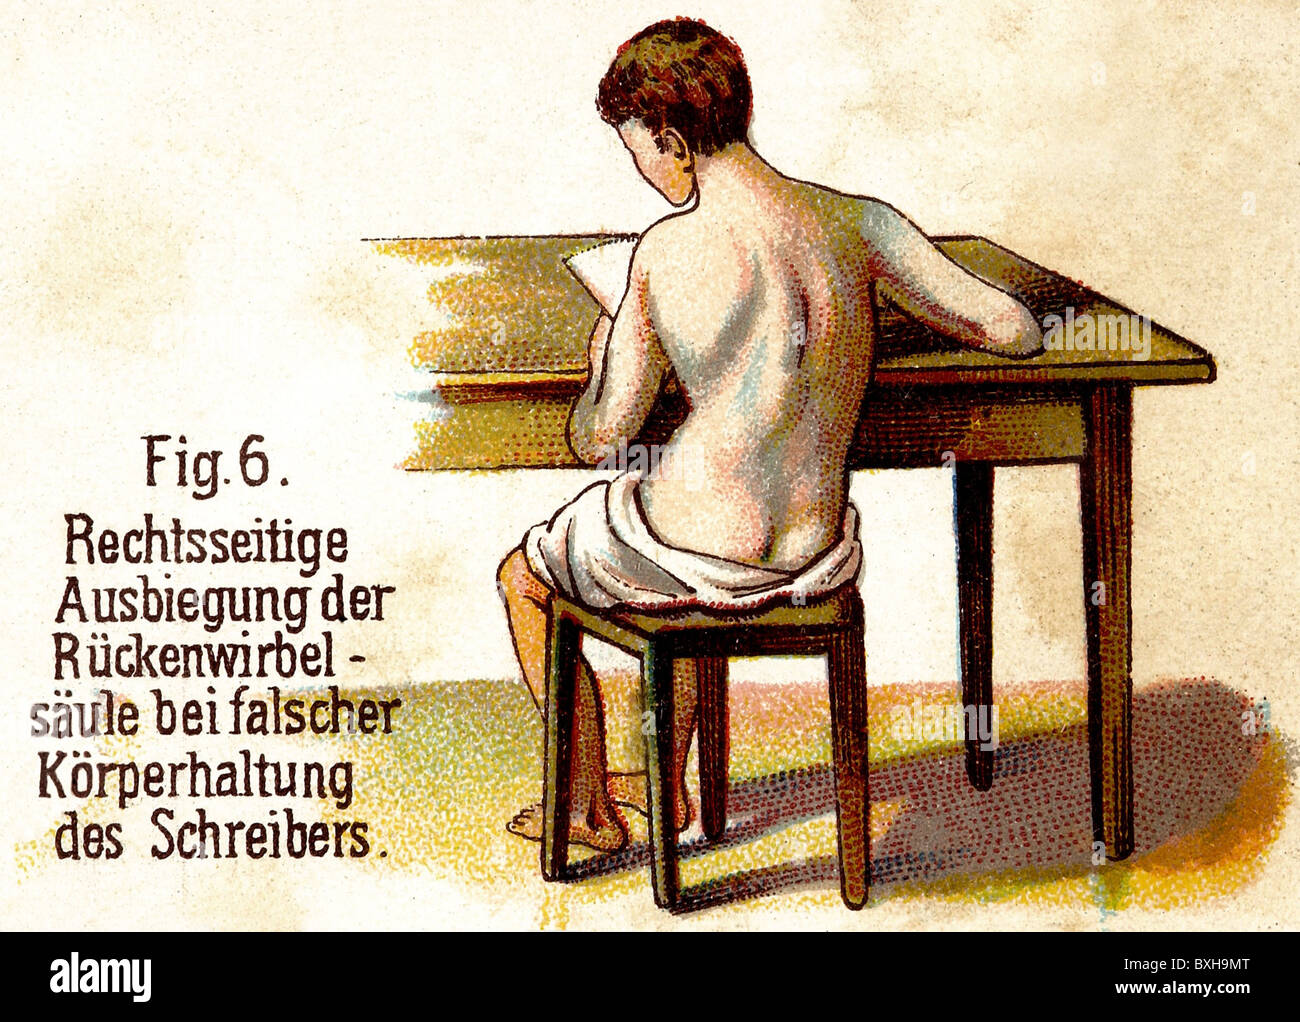 medicine, warped spine as a result of wrong posture while writing, illustration, lithograph, Germany, circa 1900, - Stock Image